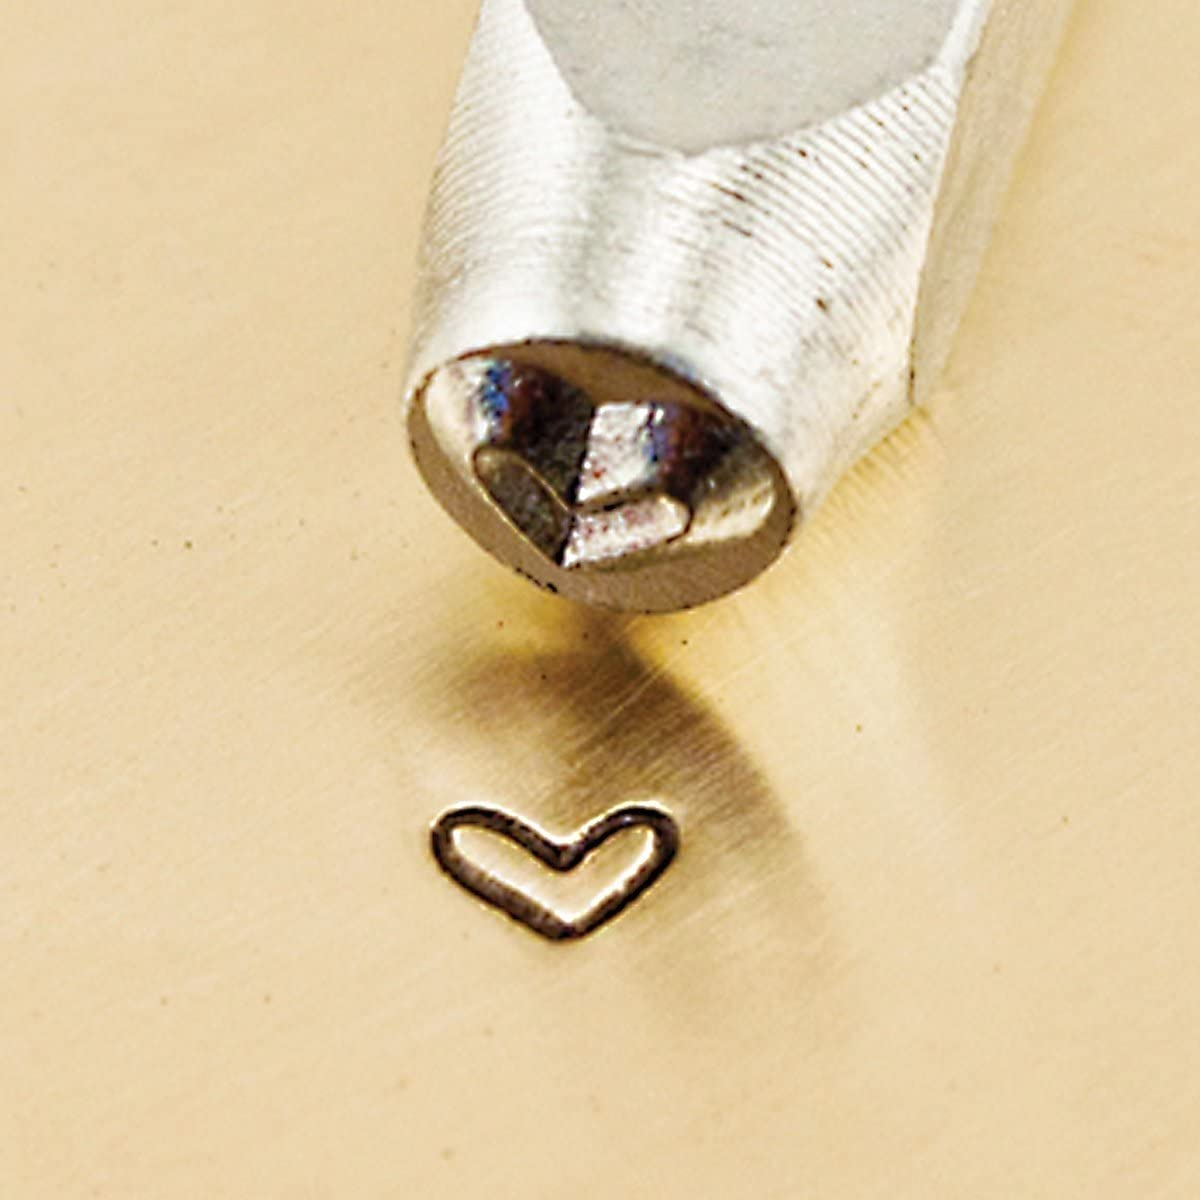 ImpressArt- Whimsy Heart Design Stamp, 3mm